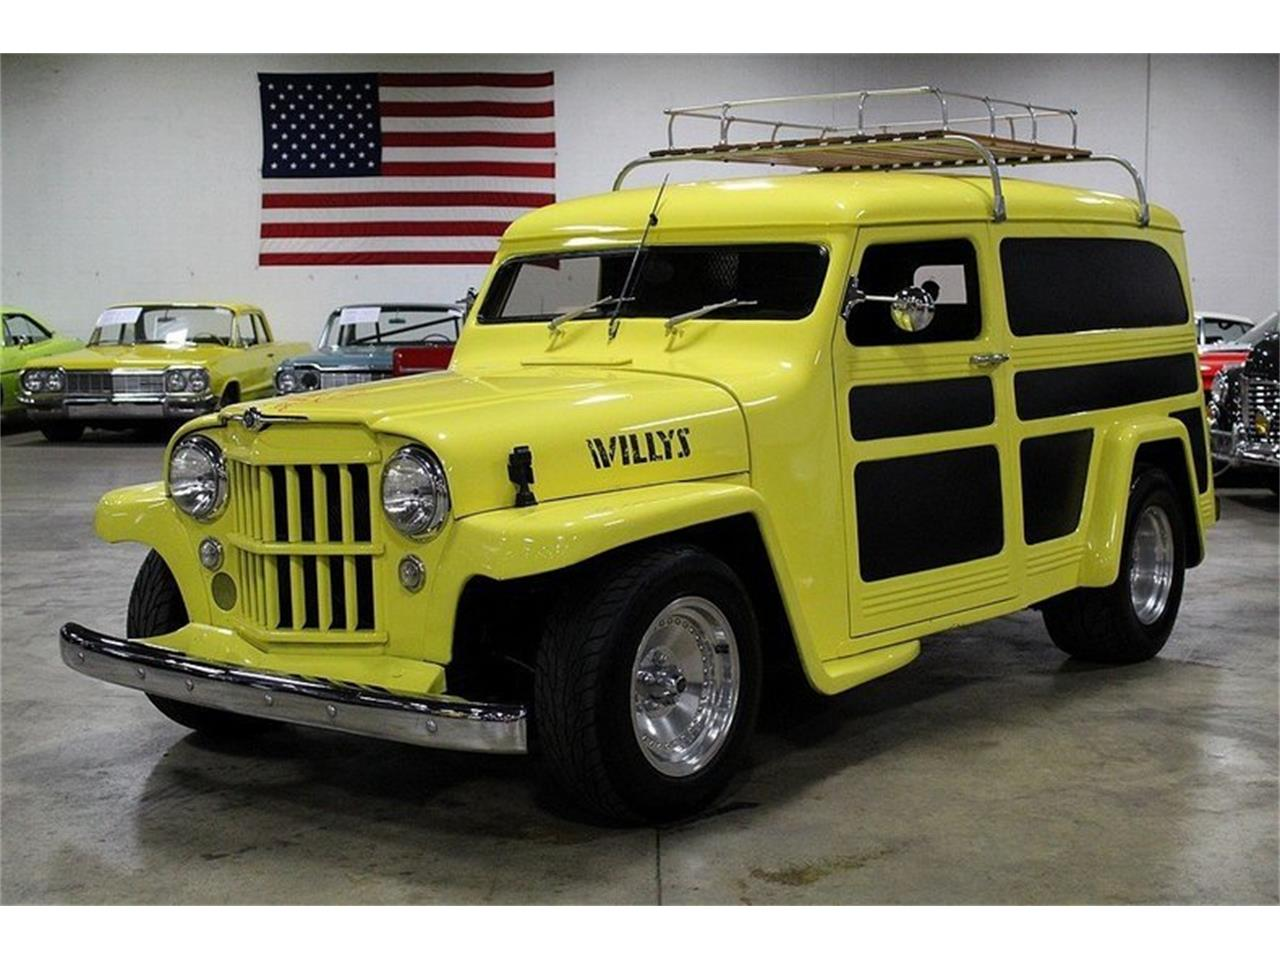 For Sale: 1950 Willys Utility Wagon in Kentwood, Michigan